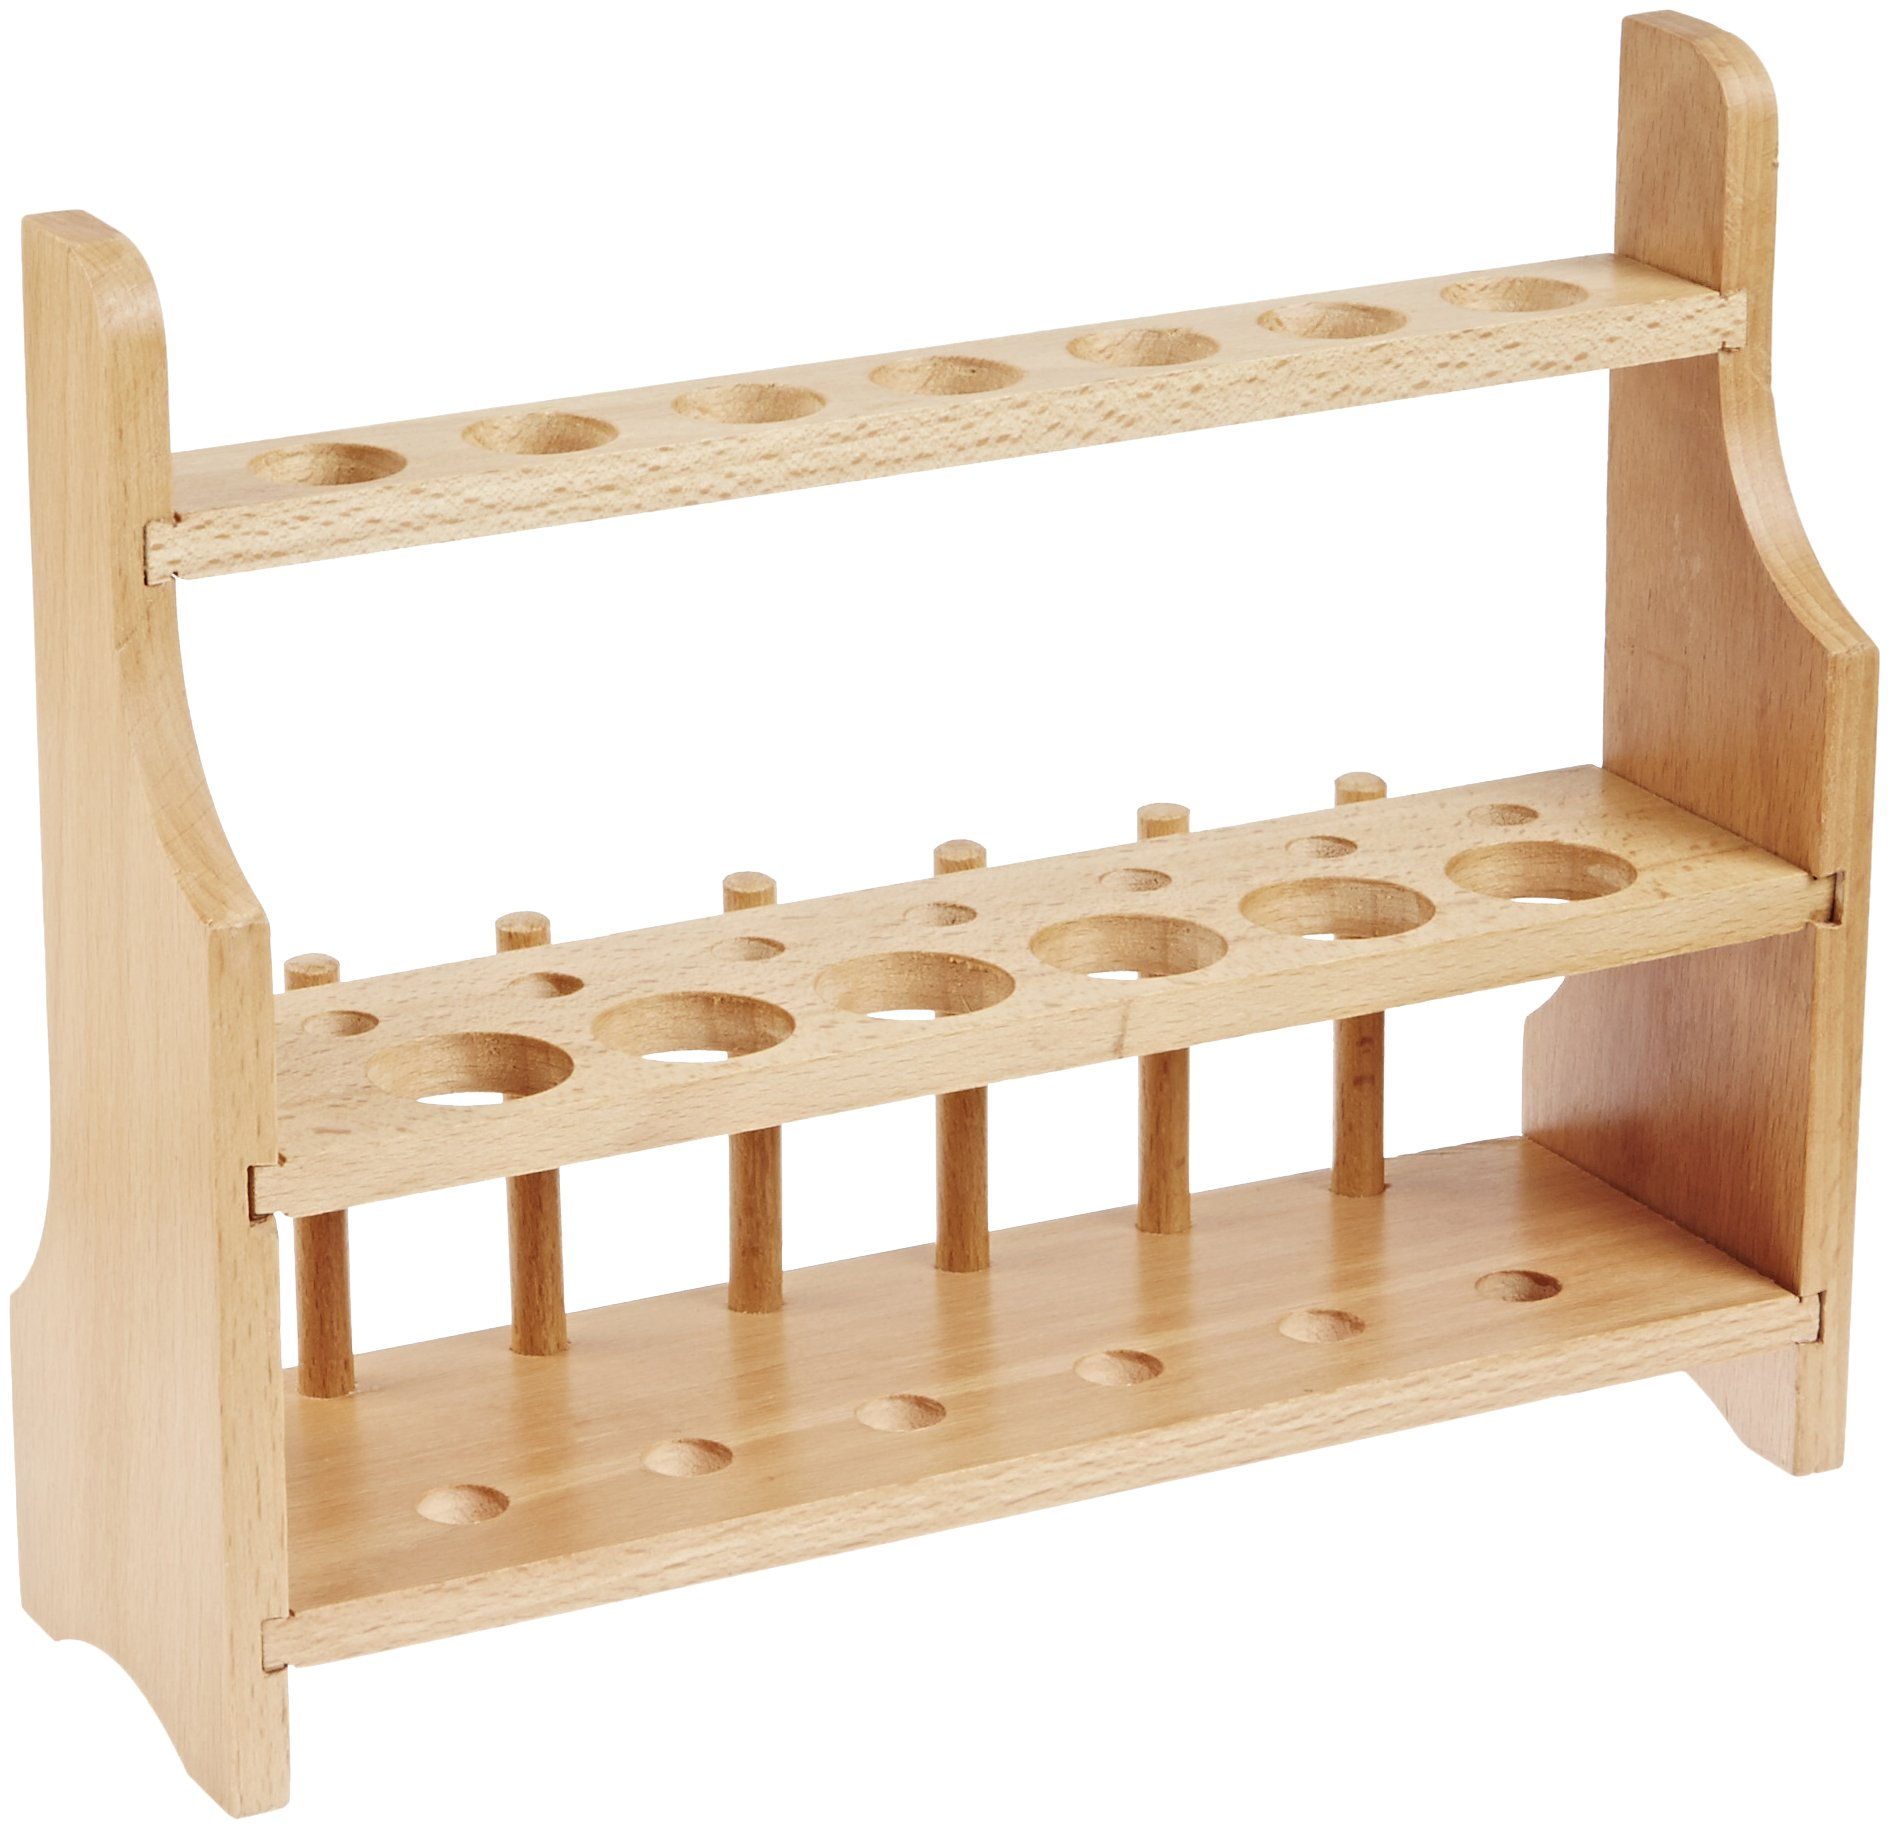 Eisco CH0003C Wood Test Tube Rack, 13 Hole, 6 Pin - 2 Shelves, 20-25mm by EISCO